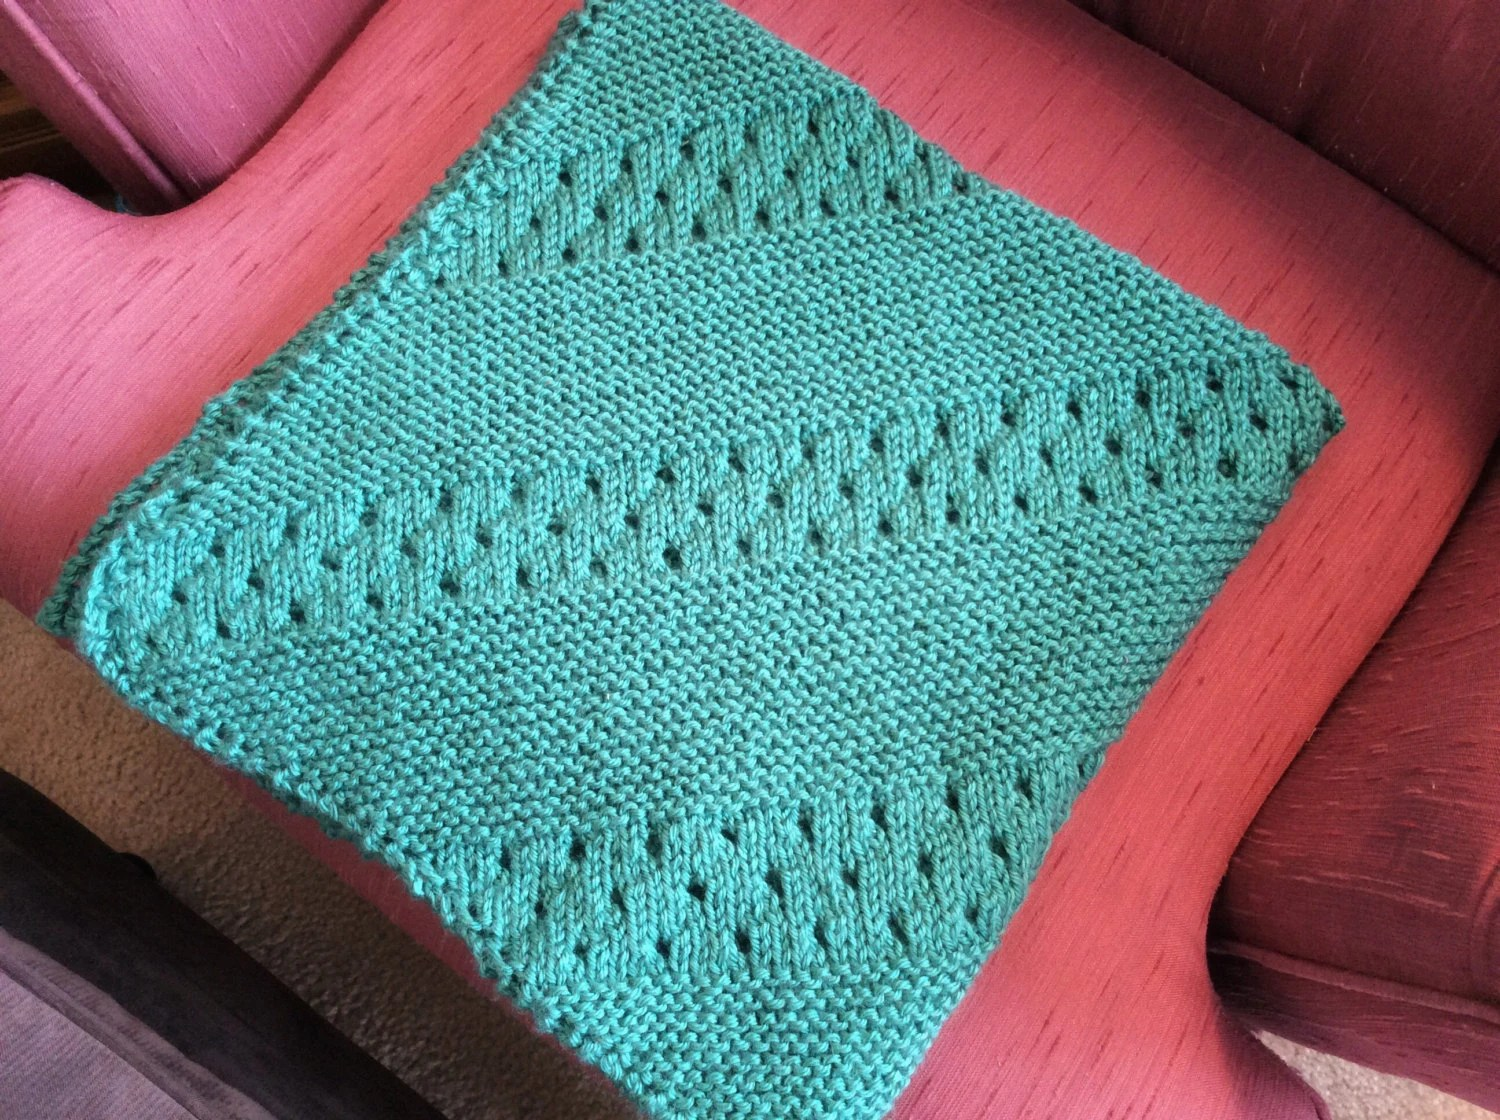 wheelchair blanket garelick boat chairs small baby crocheted in jade green stroller lap